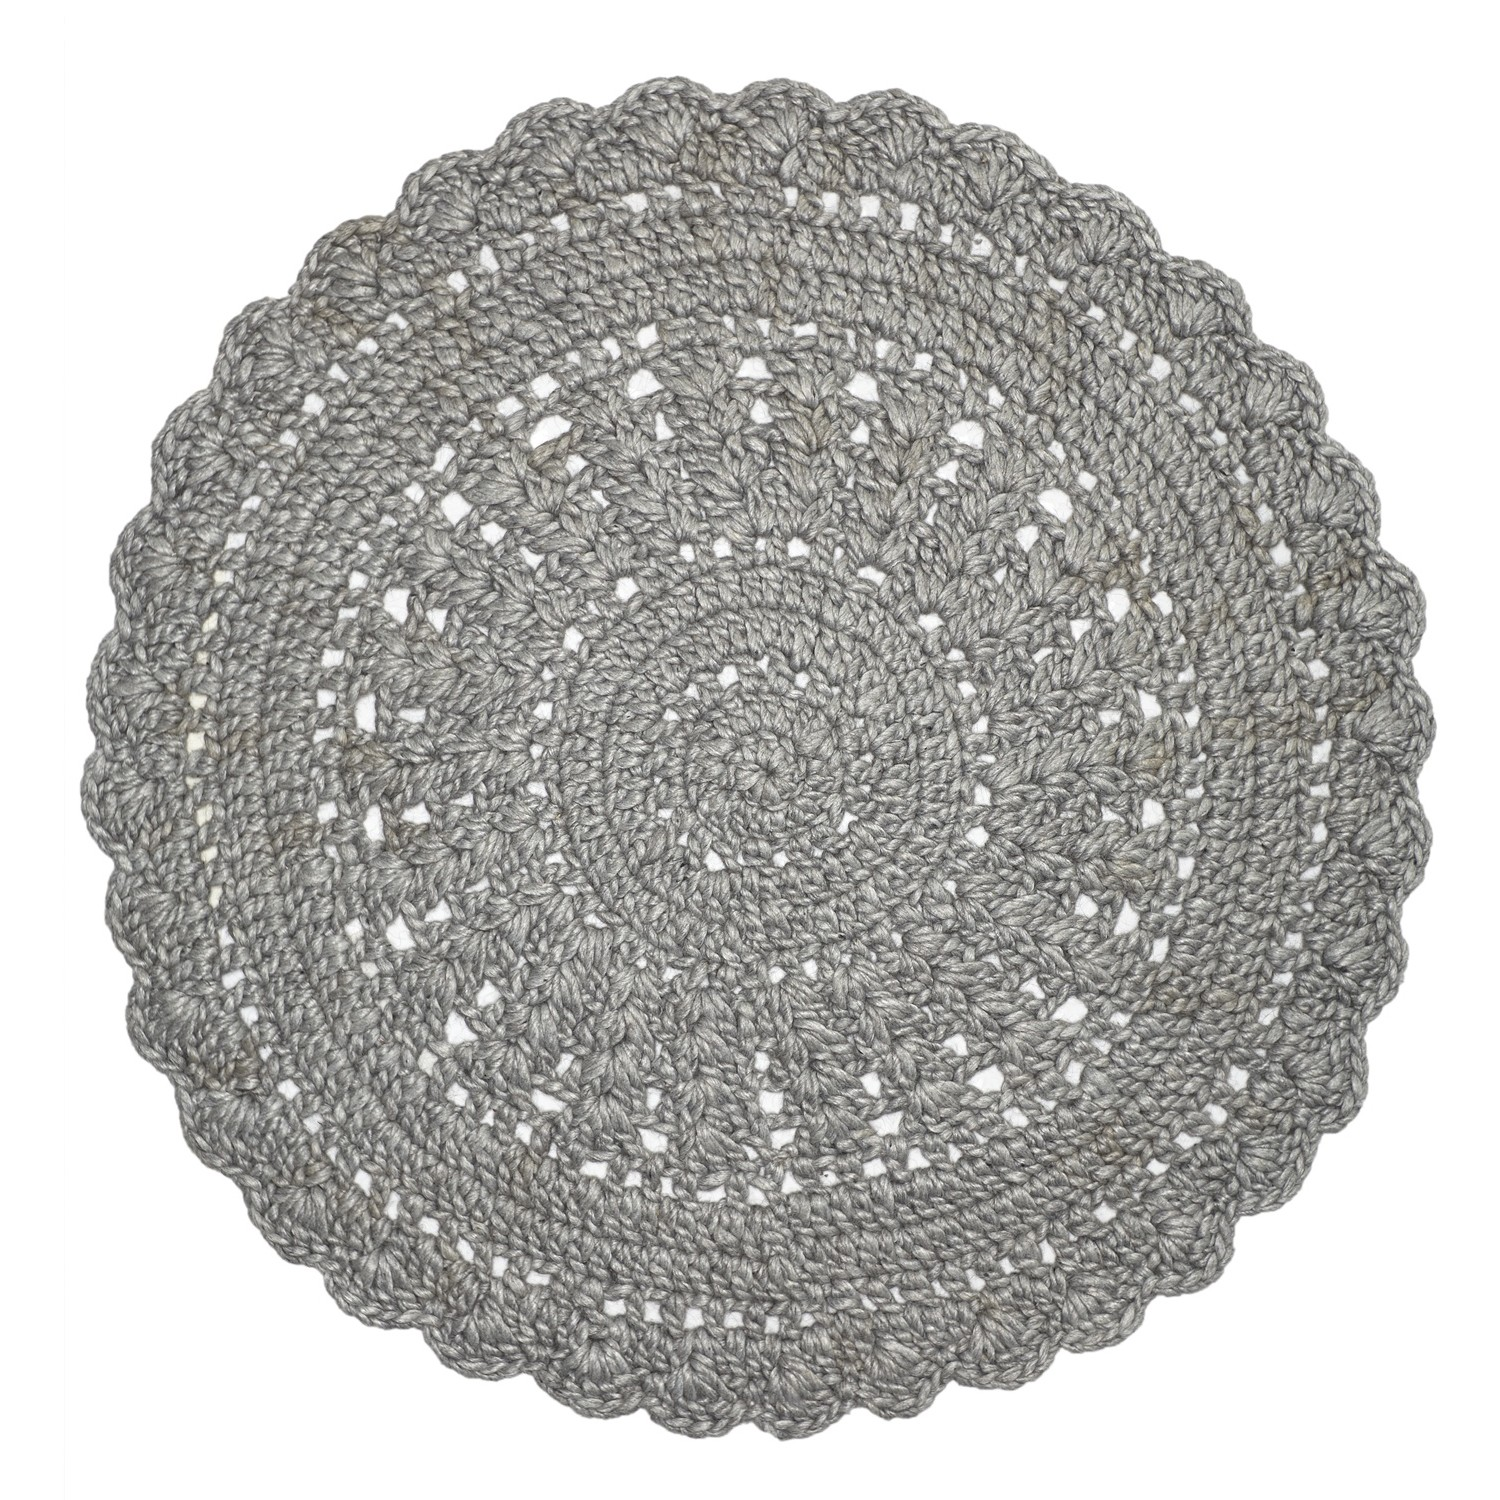 hooks Hand Knotted Modern Round Wool Rug, 150cm, Silver